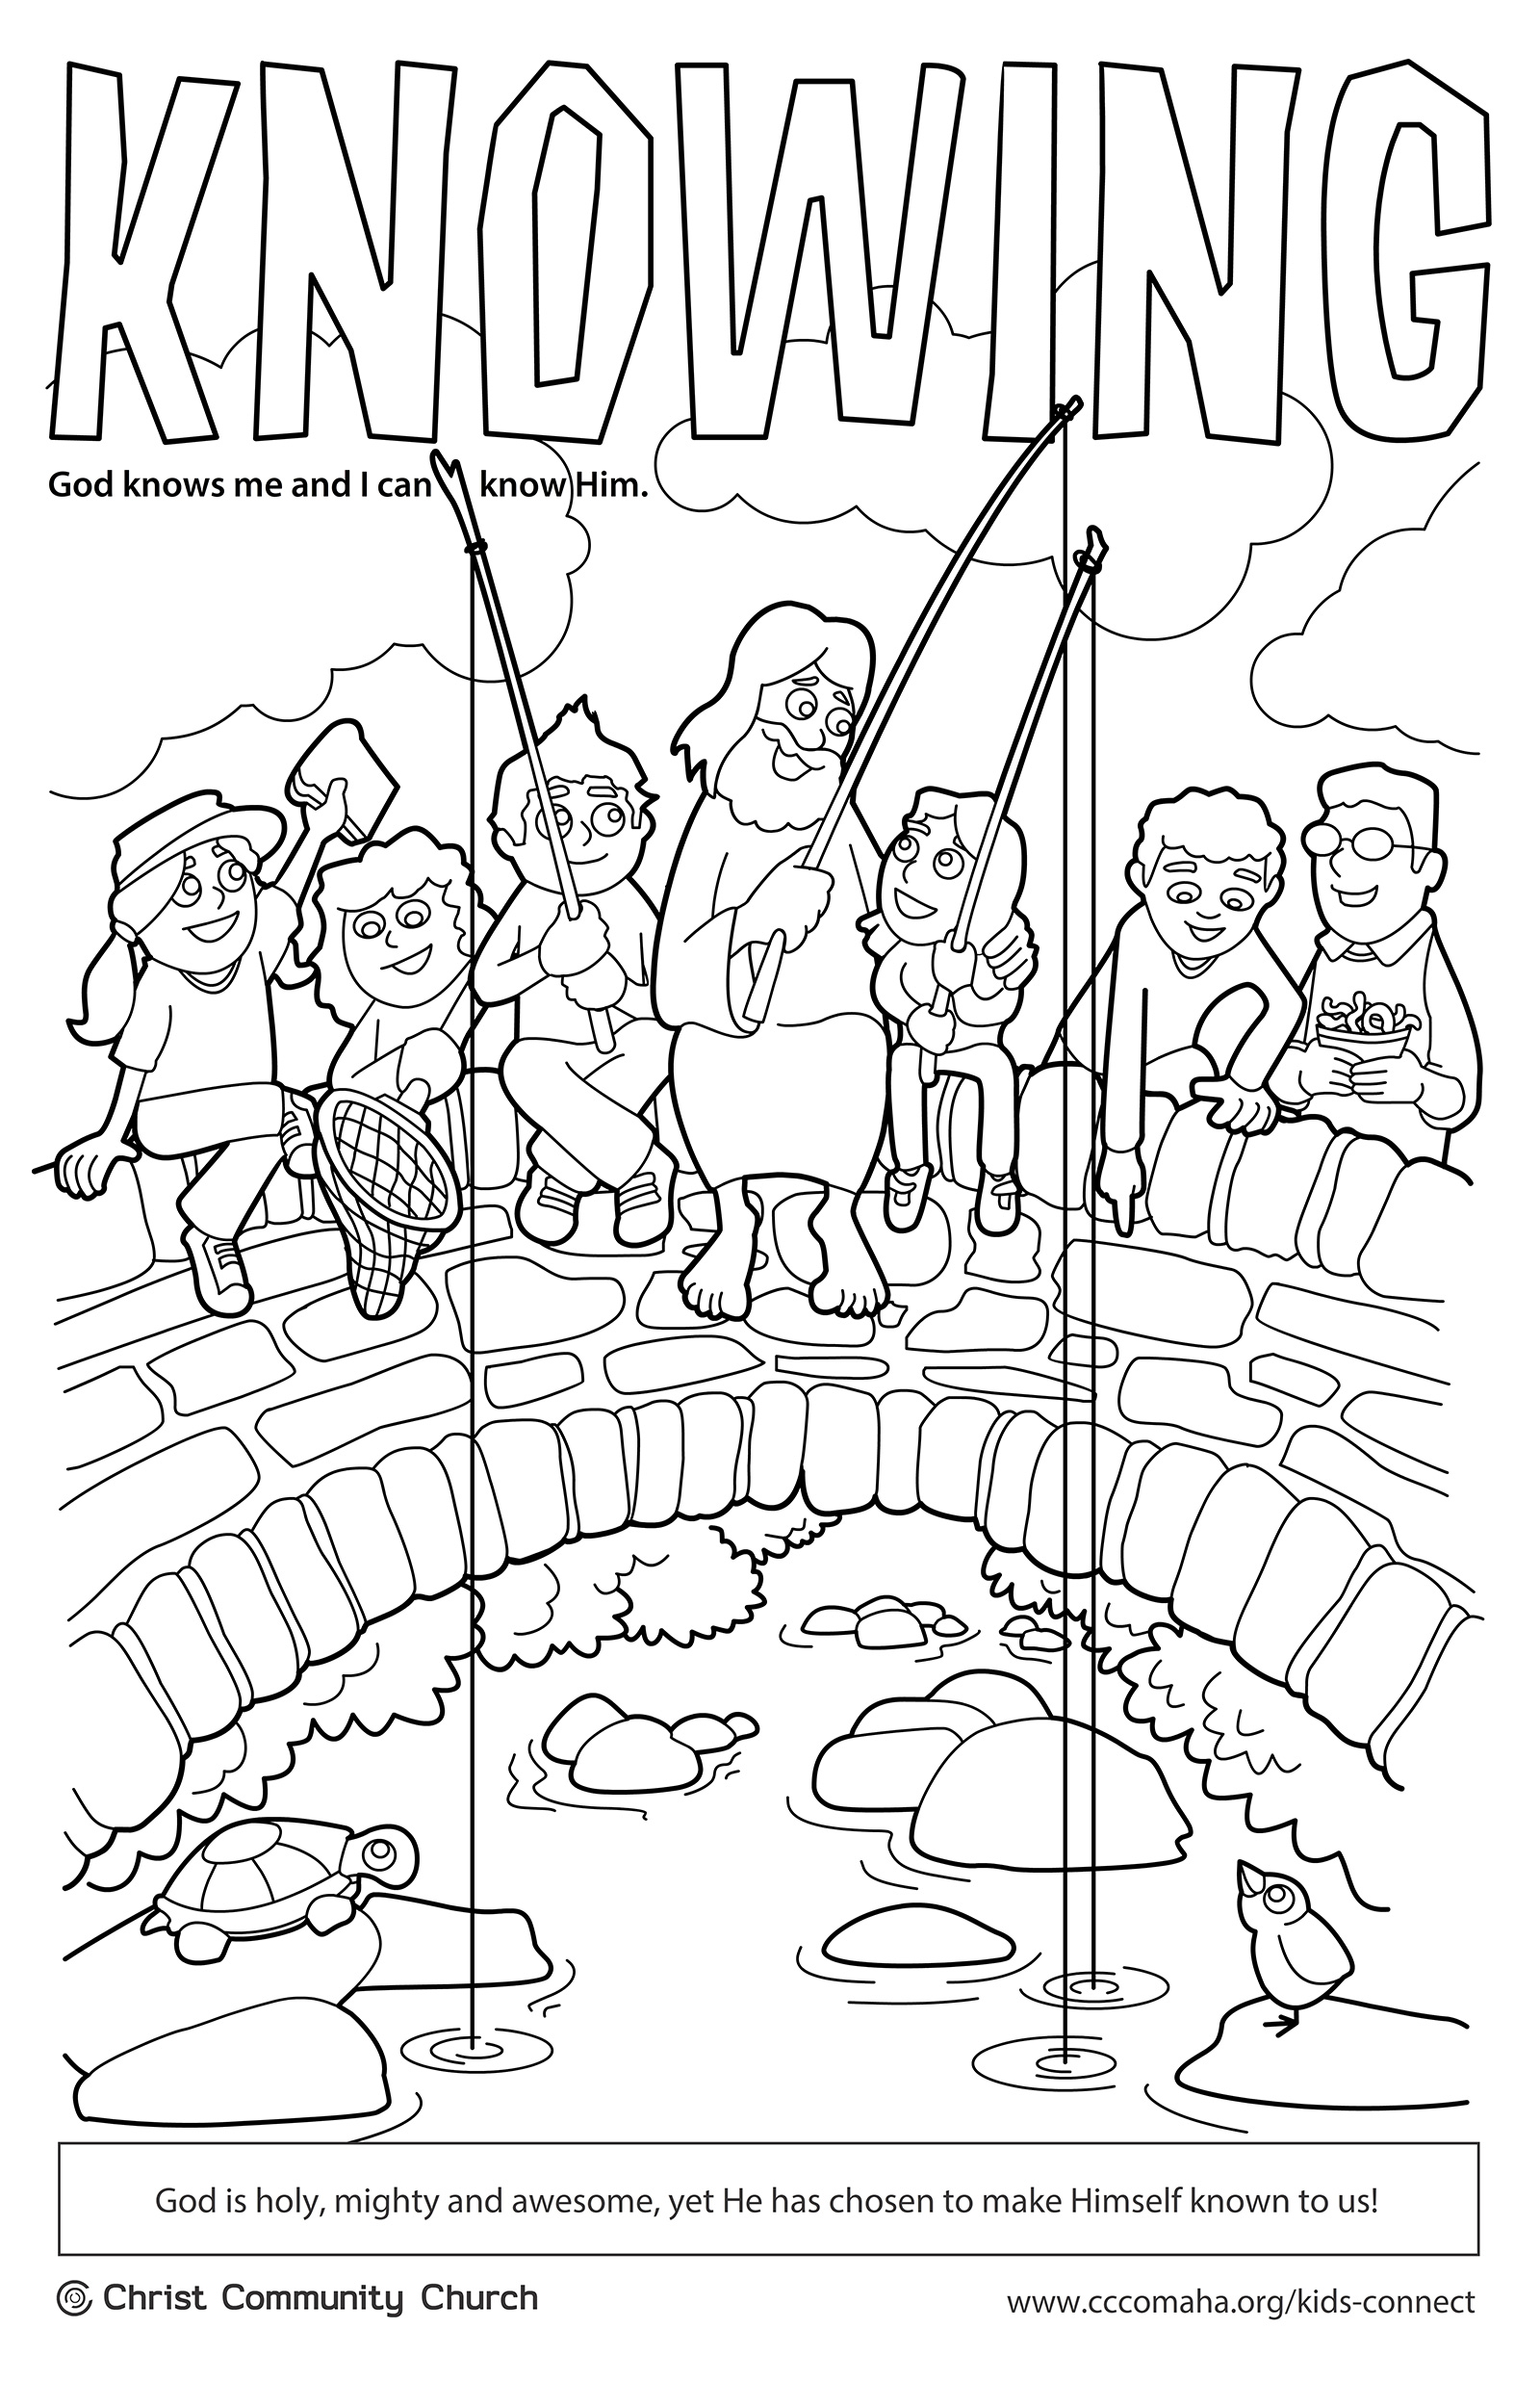 I Created These Coloring Pages In 2013 For The Kids Connect Team At Christ Community Church Coincided With Curriculum Themes Such As